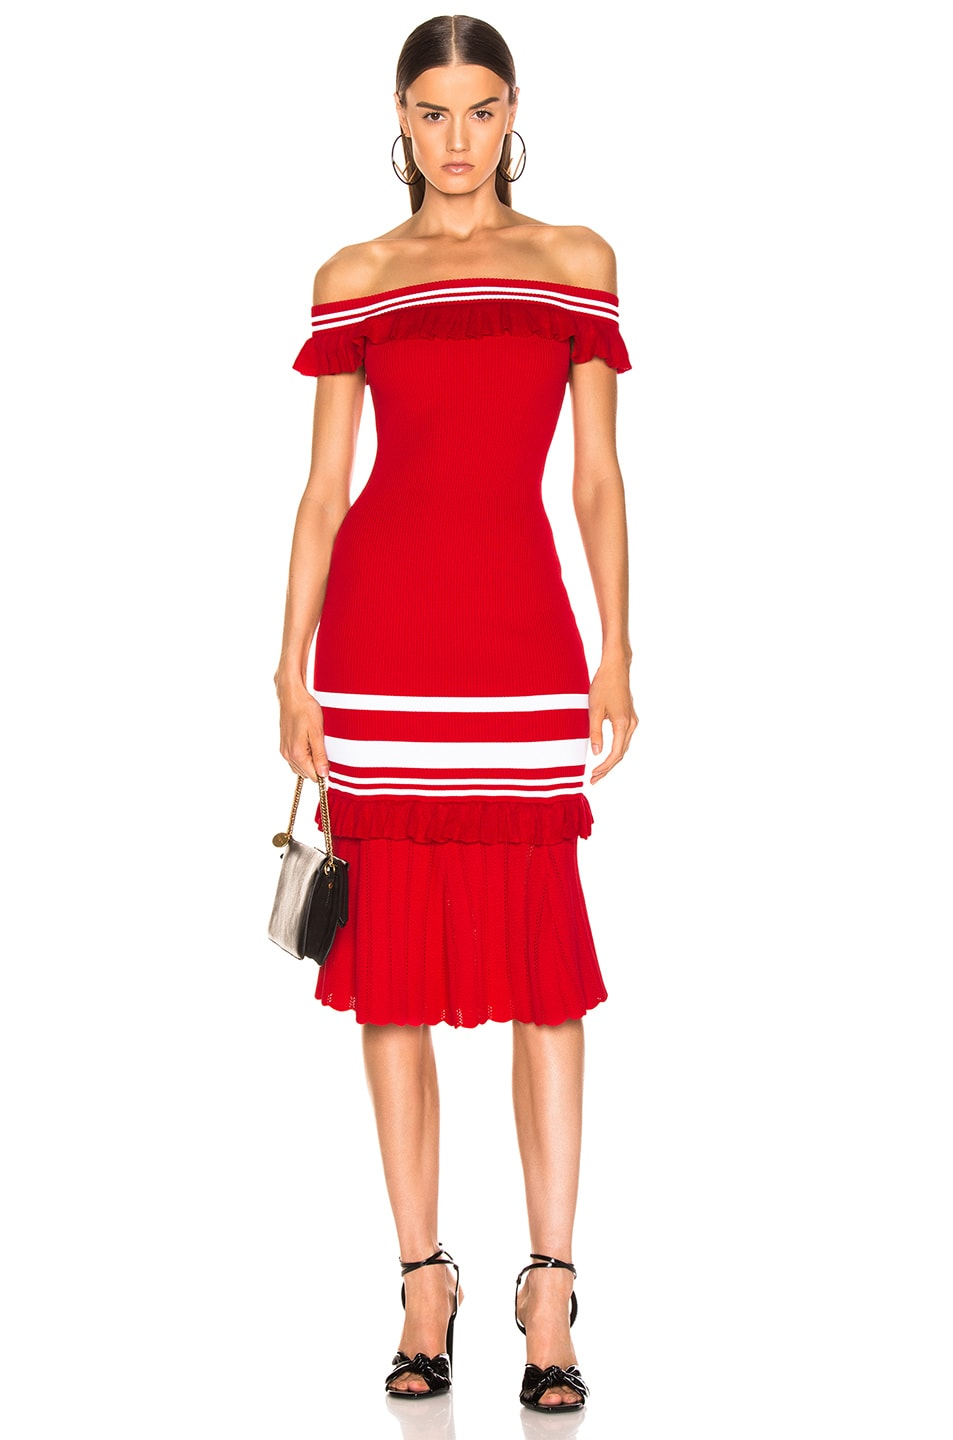 Image 1 of JONATHAN SIMKHAI for FWRD Off the Shoulder Knit Dress in Red & White